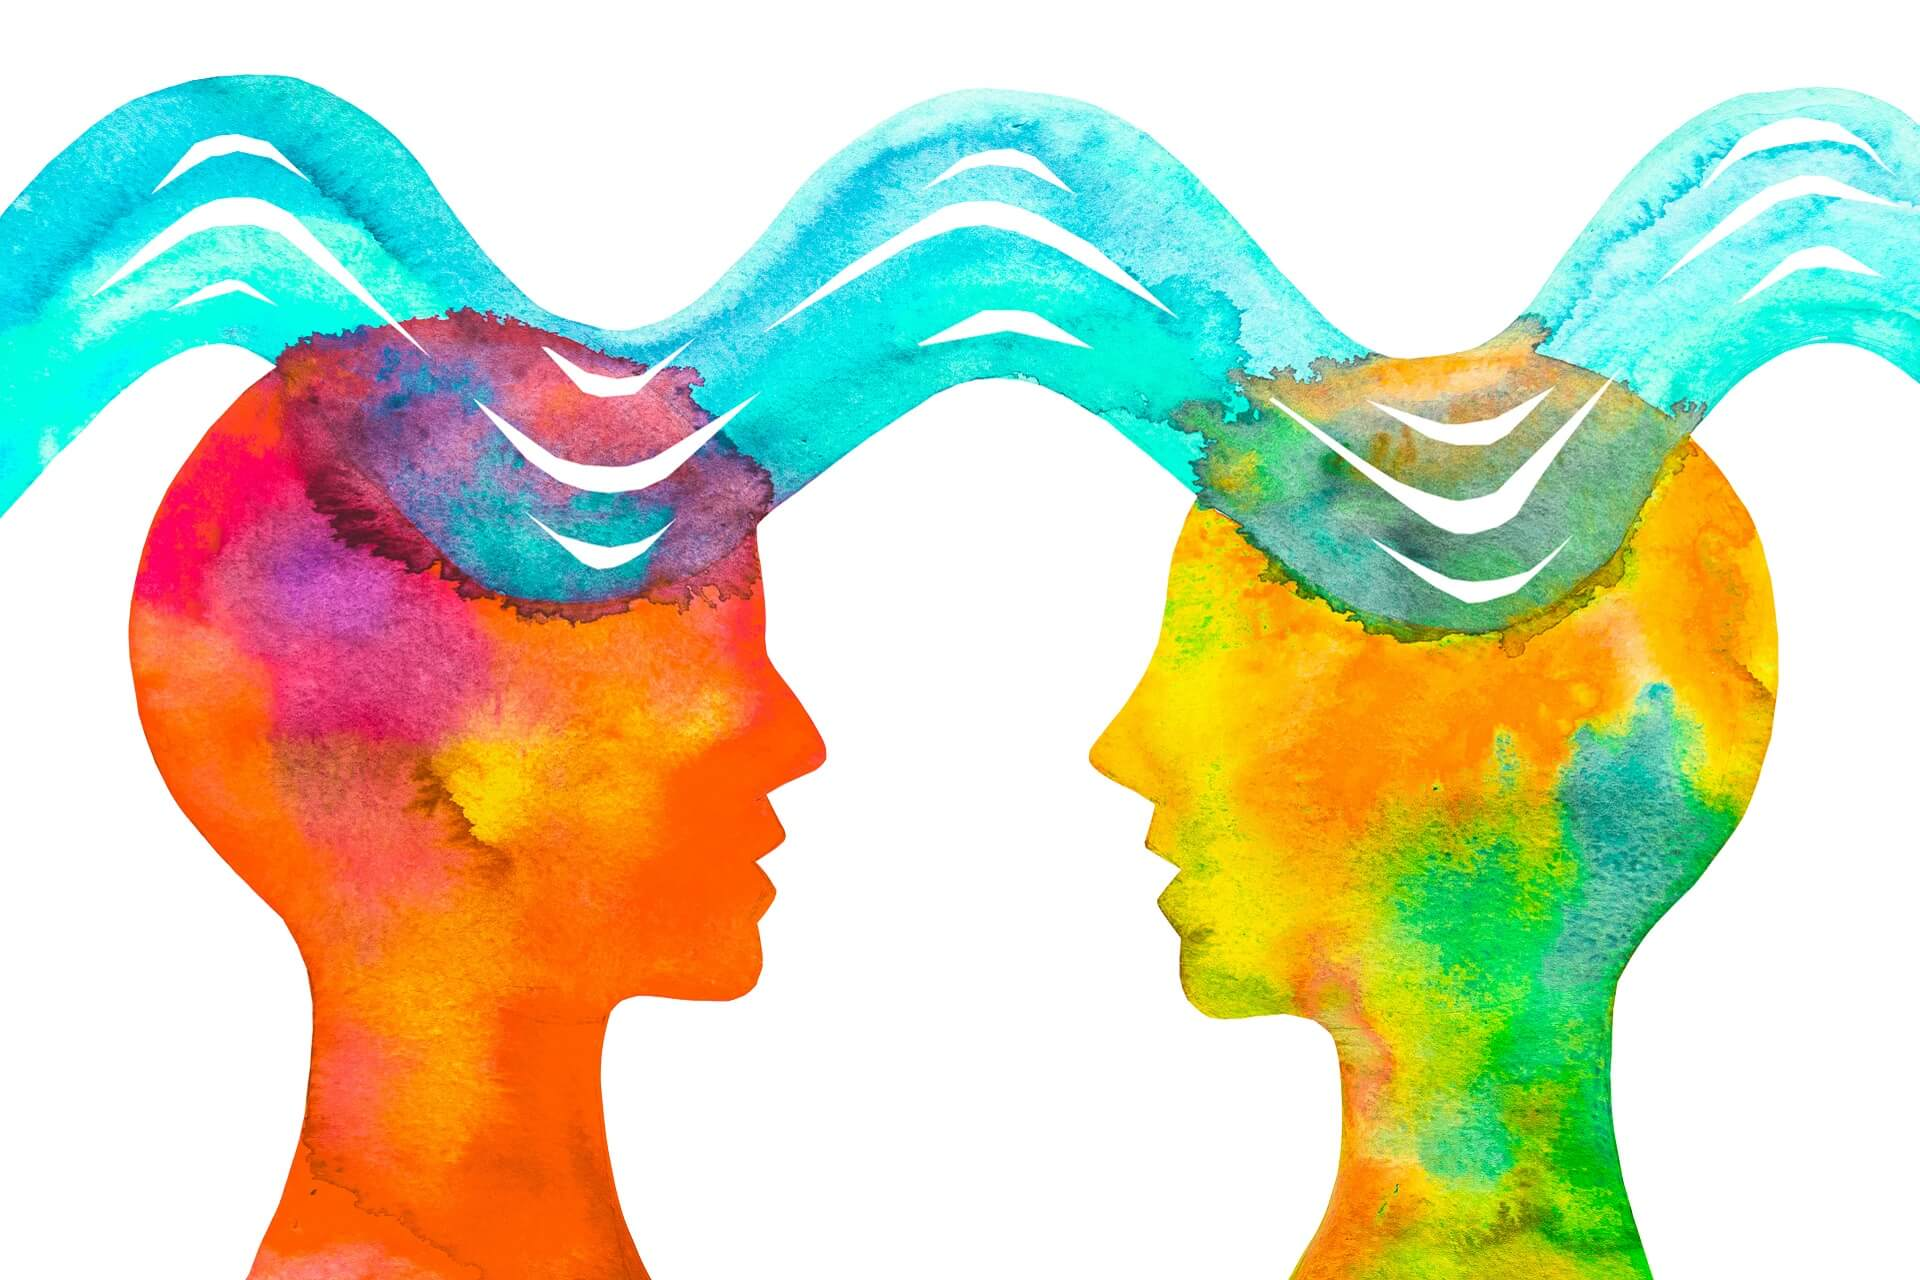 sketch depicting communication with thought